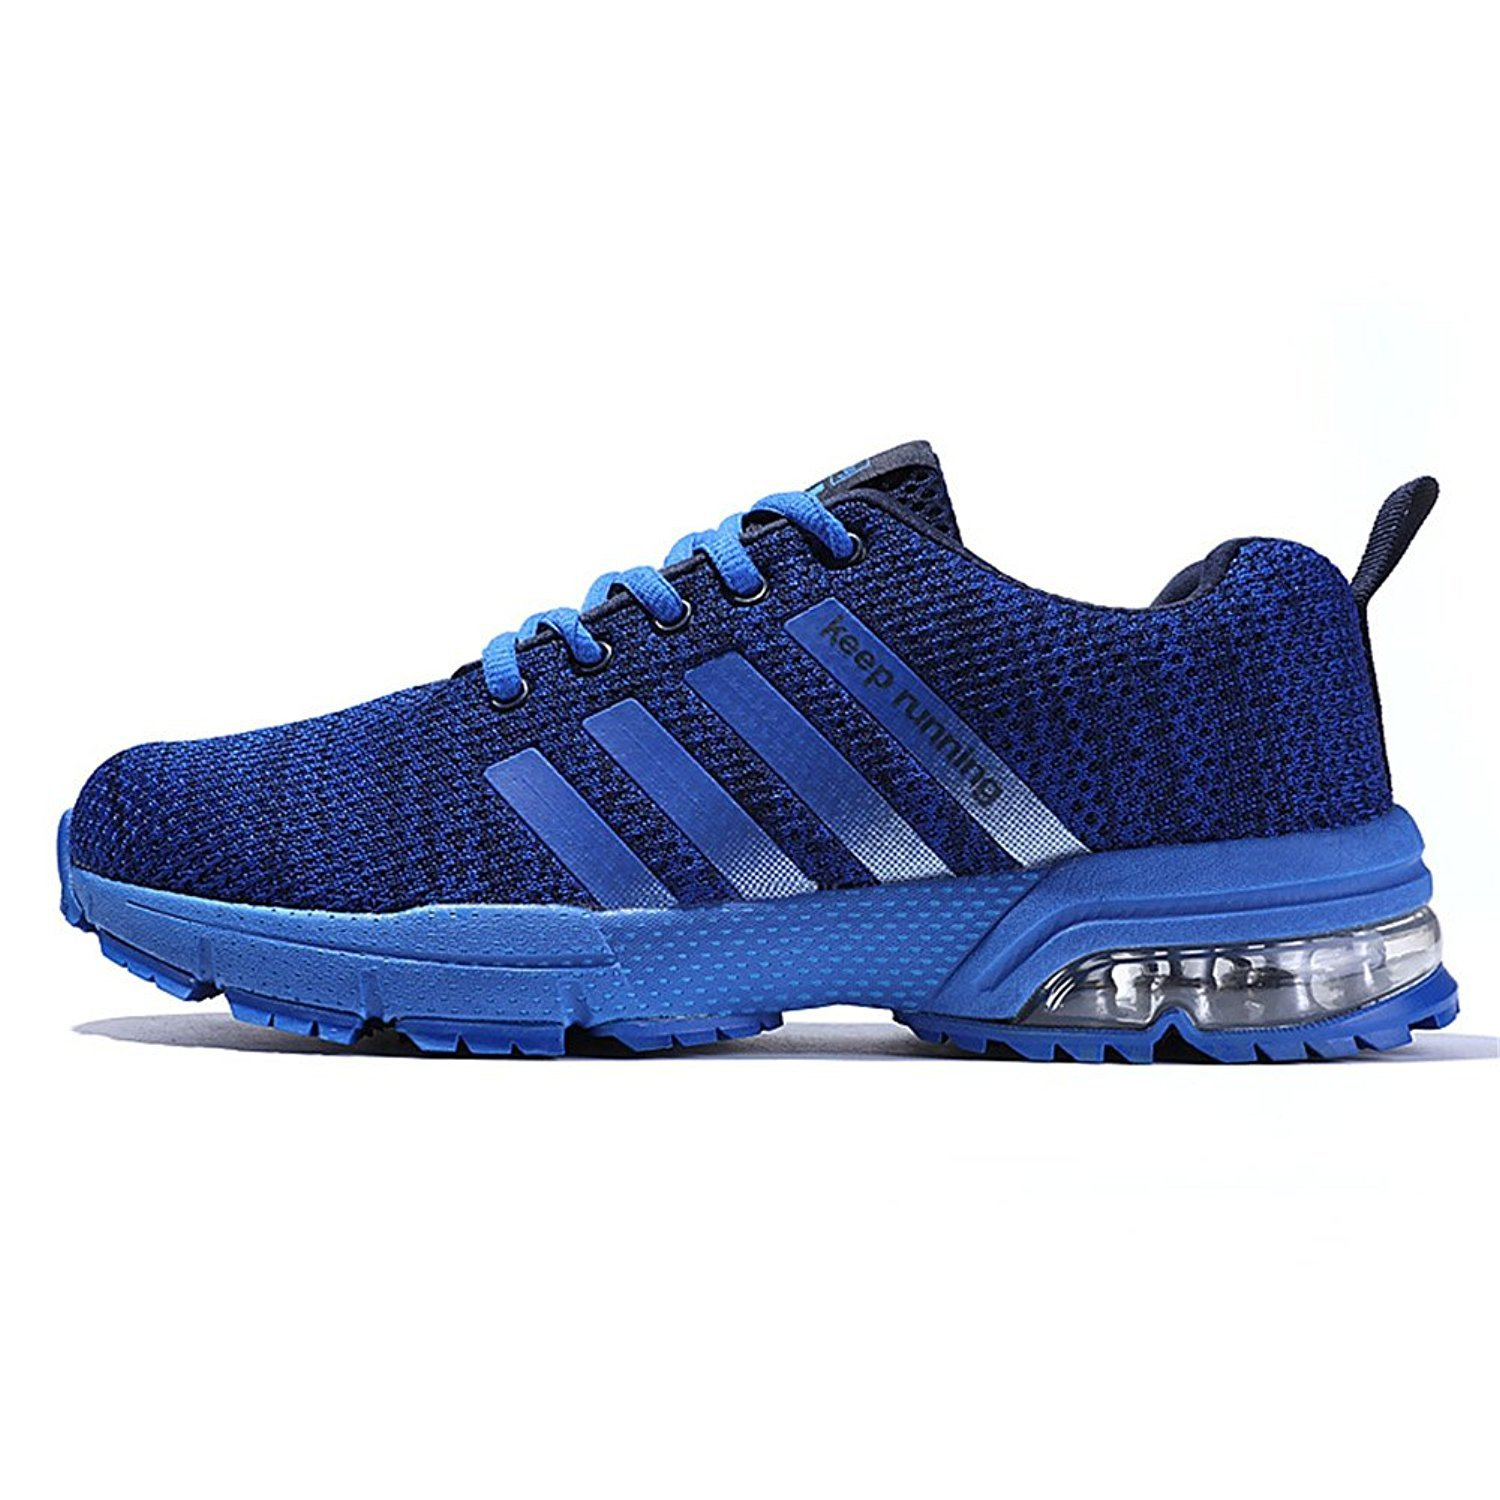 XIDISO Mens and Womens Sneakers Air Cushion Sports Running Shoes for Men Lightweight Breathable Athletic B07D2BQPFX 6 US Women =EU 37|Blue